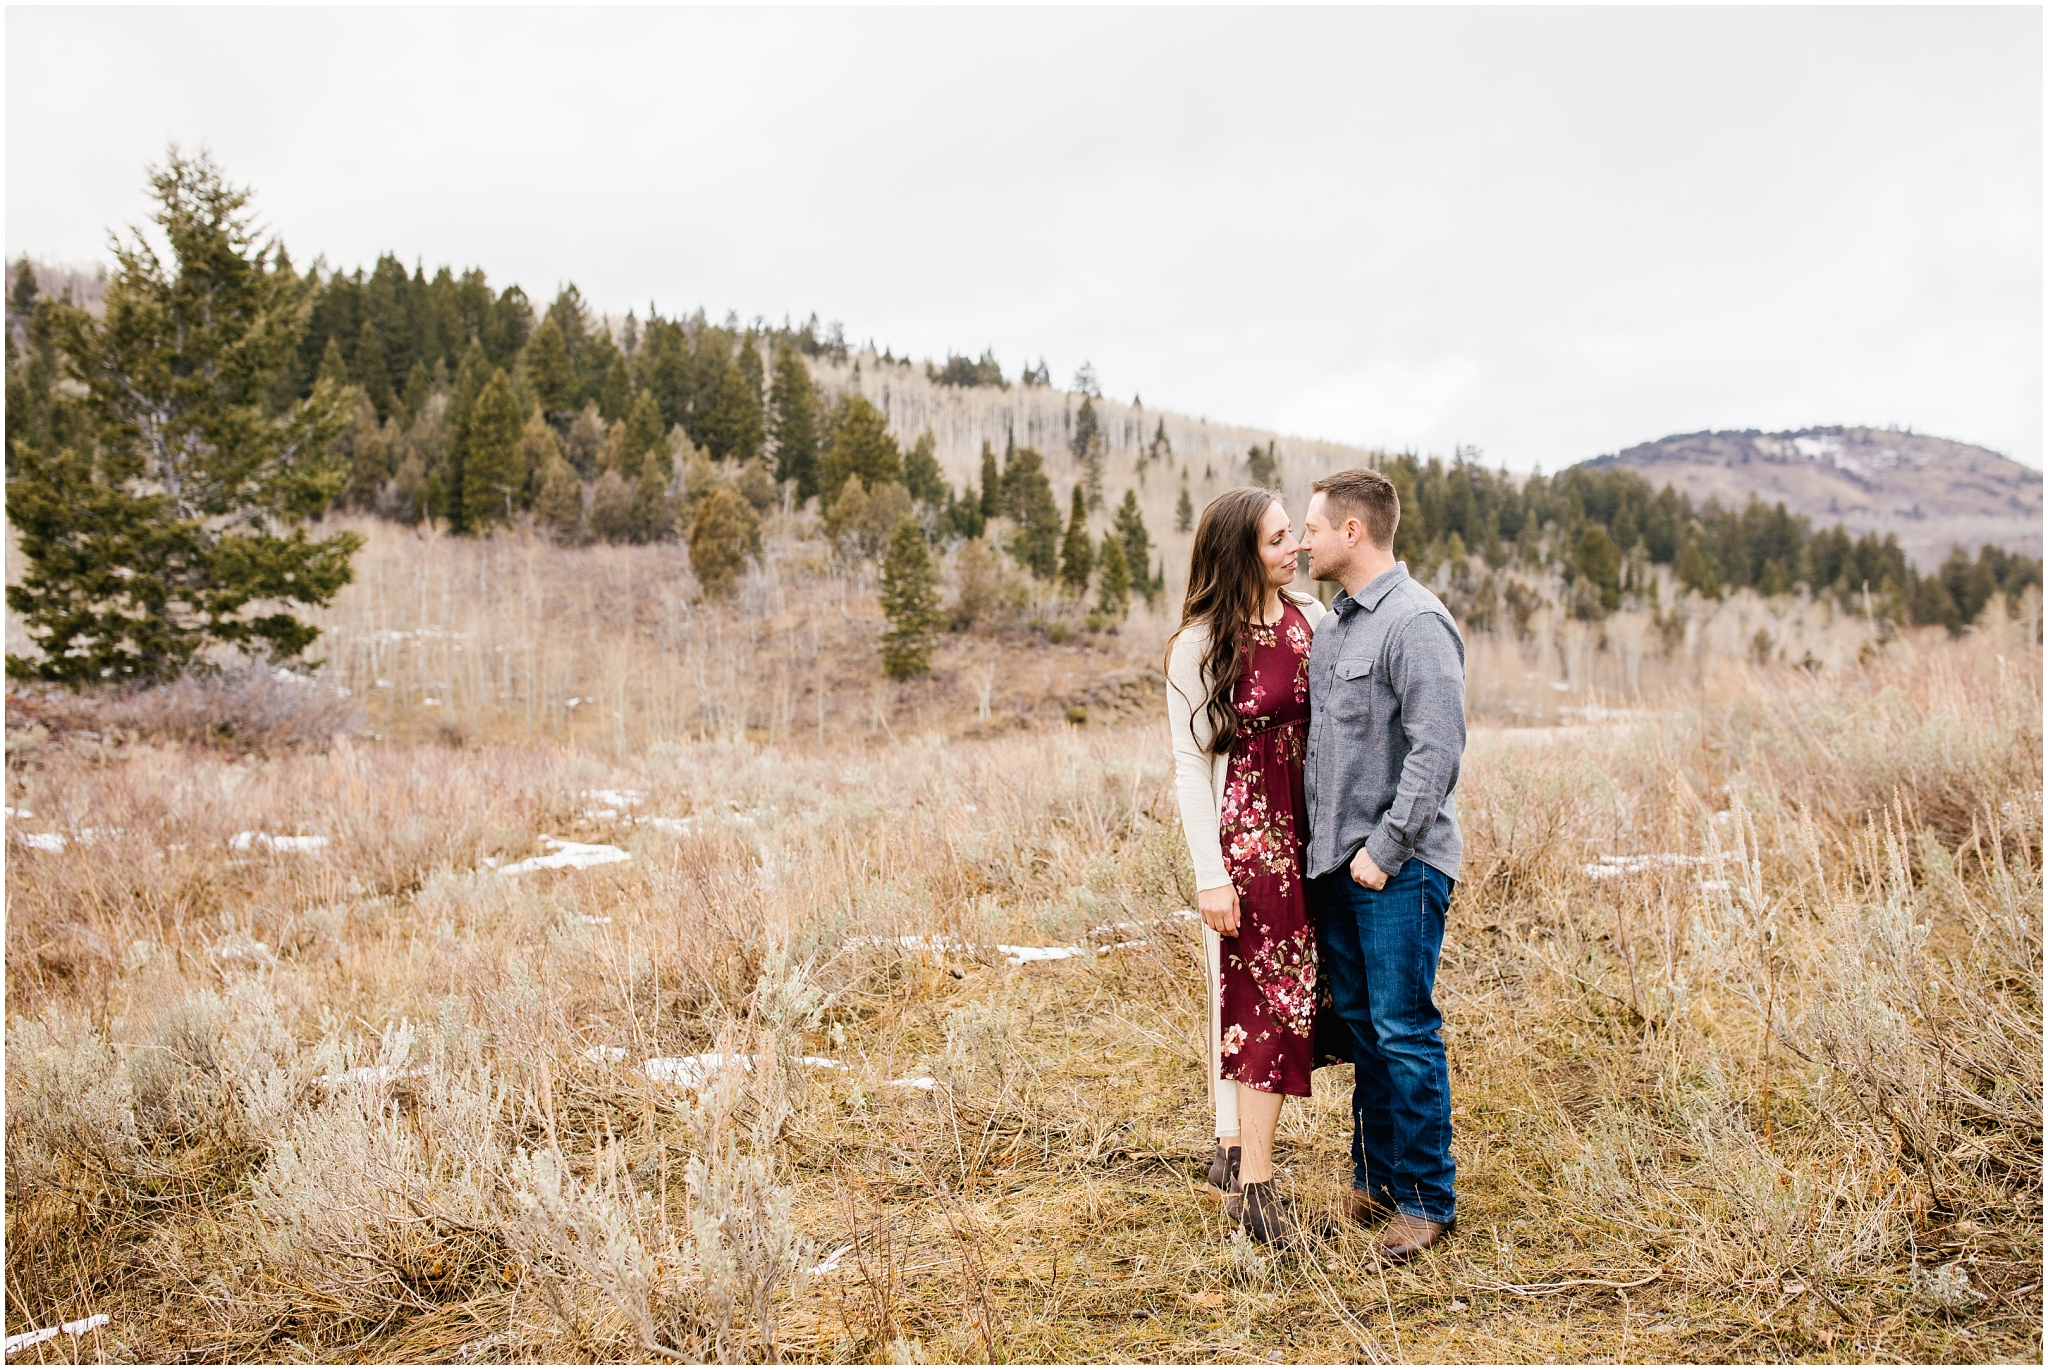 SSEngagements-45_Lizzie-B-Imagery-Utah-Wedding-Photographer-Park-City-Salt-Lake-City-Logan-Utah-Engagement-Session.jpg